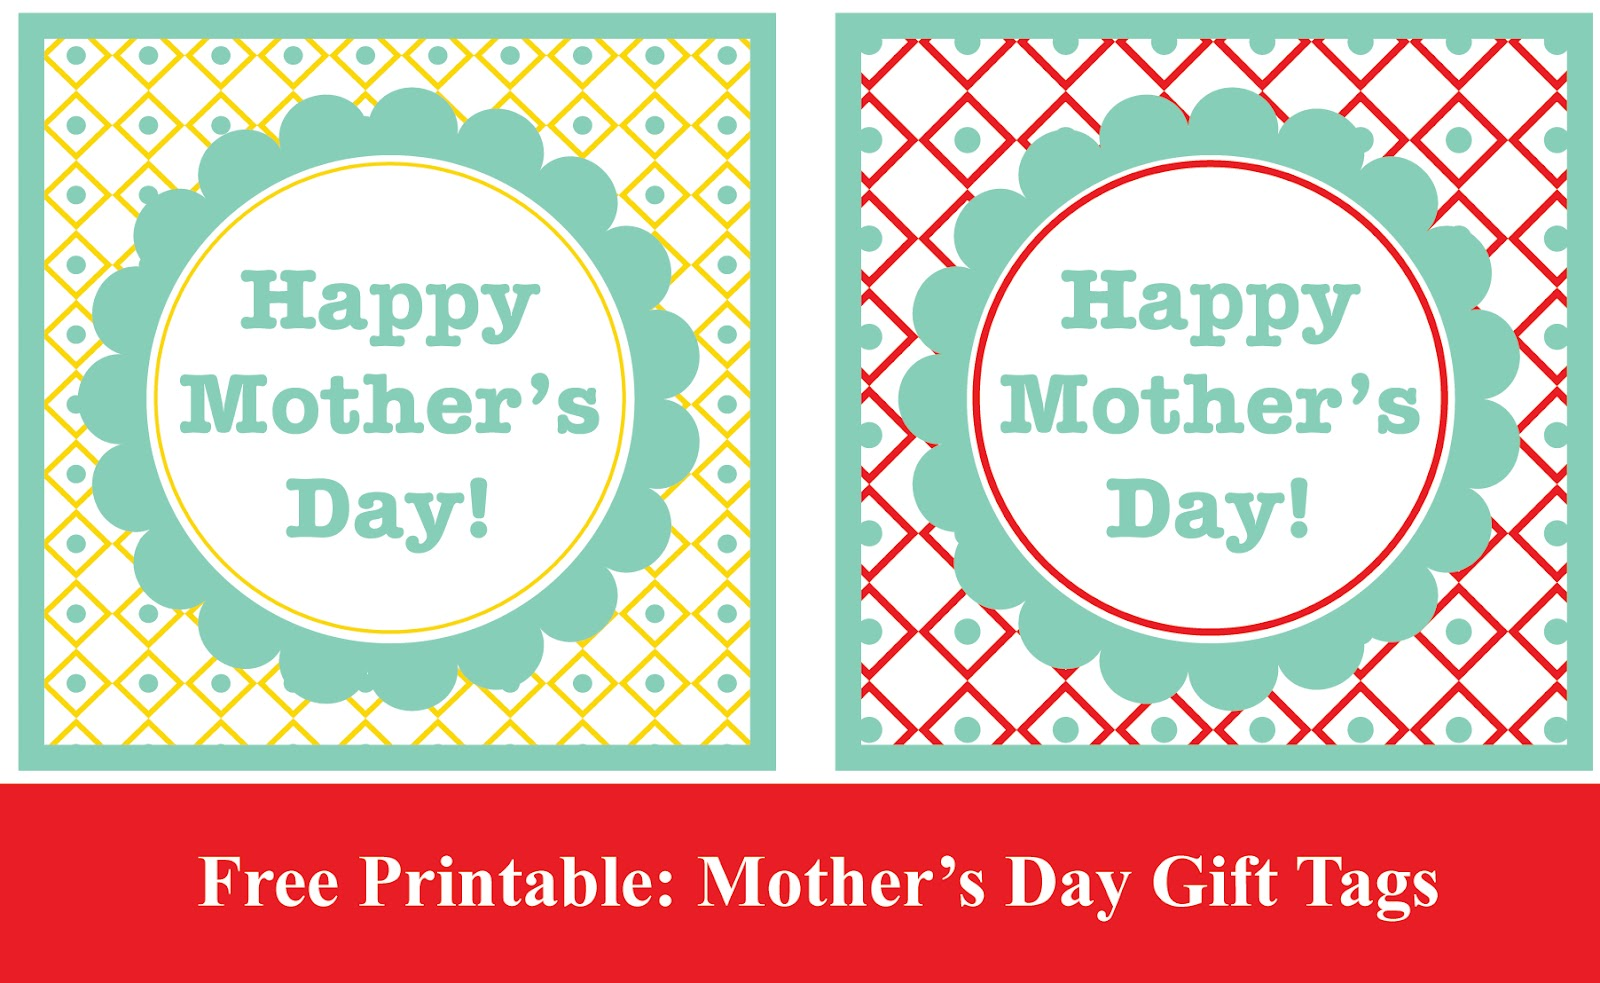 Mother S Day Tags: The Gilded Pear: Free Printable: Mother's Day